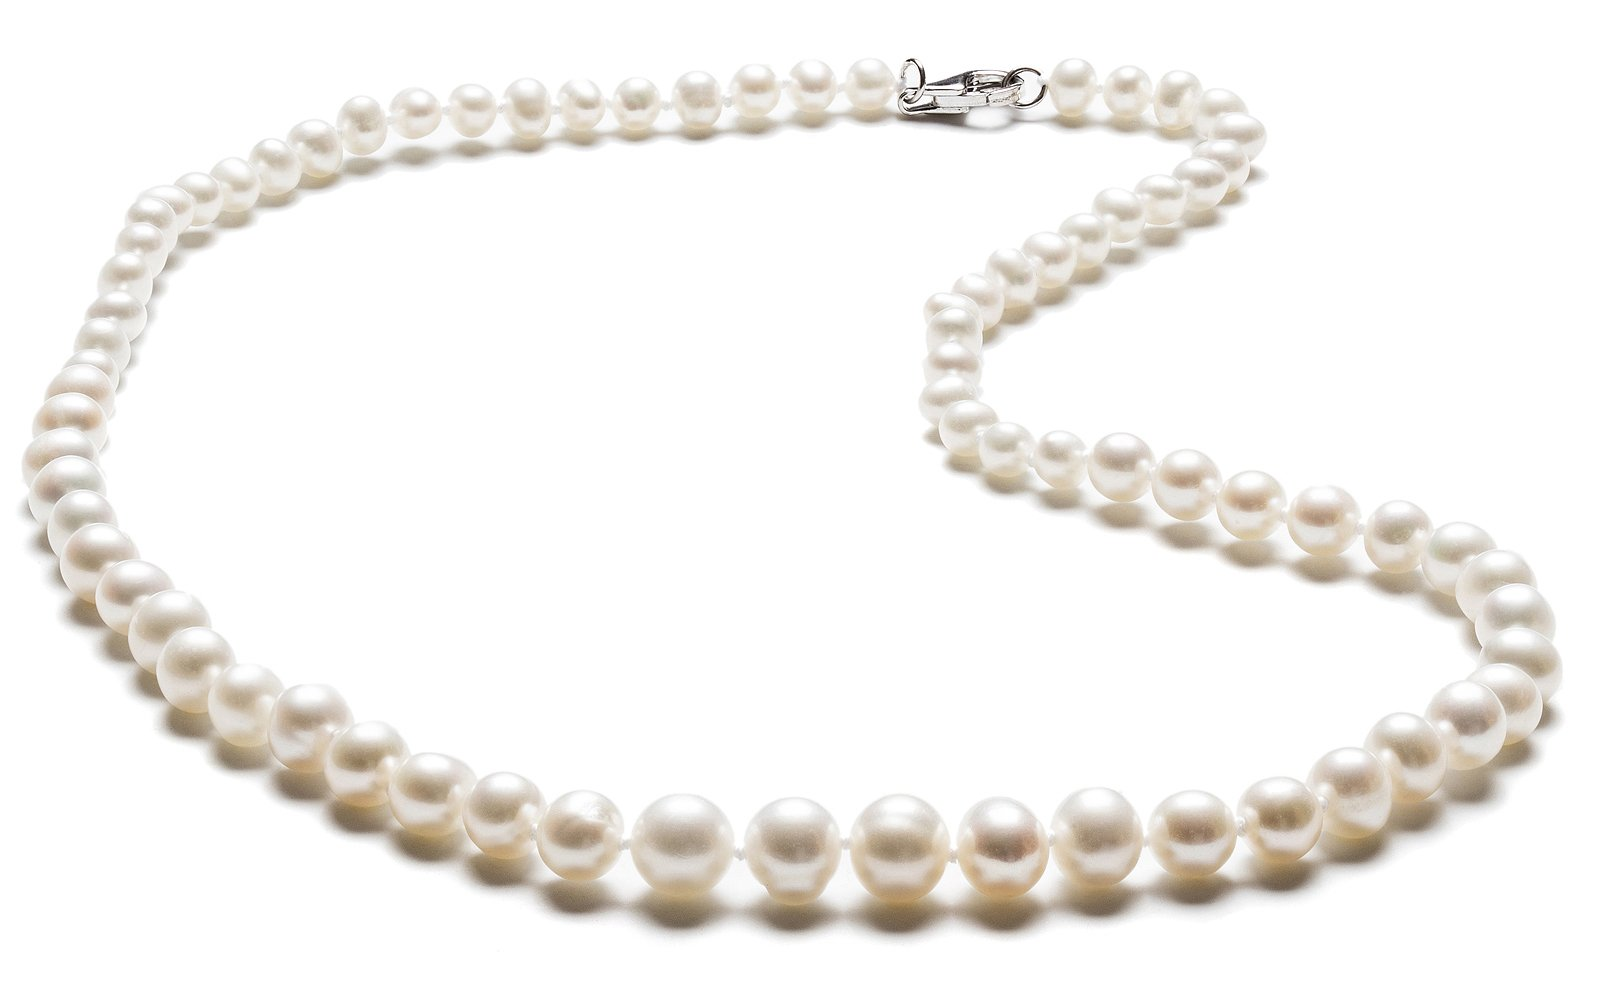 SilverLuxe Sterling Silver Genuine Freshwater Pearl Graduated Necklace 4-8mm 18''